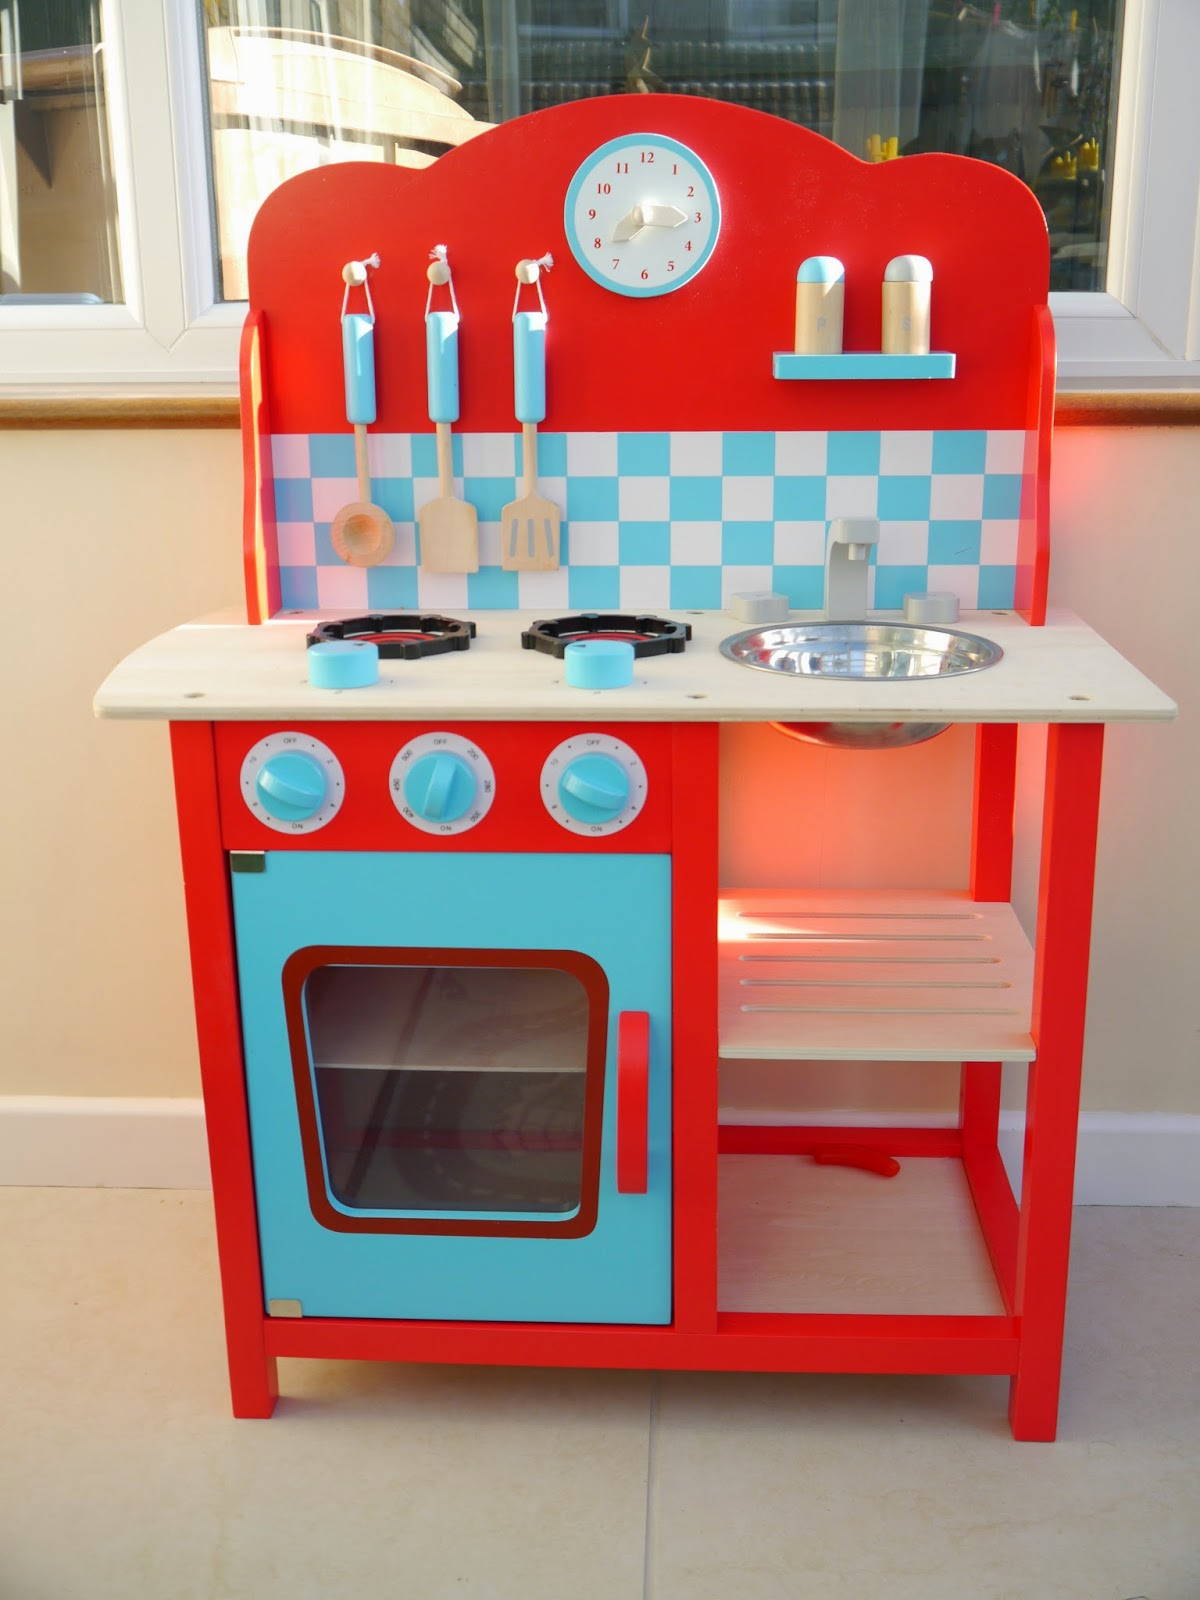 Handbags To Change Bags Gltc Cavendish Wooden Play Kitchen